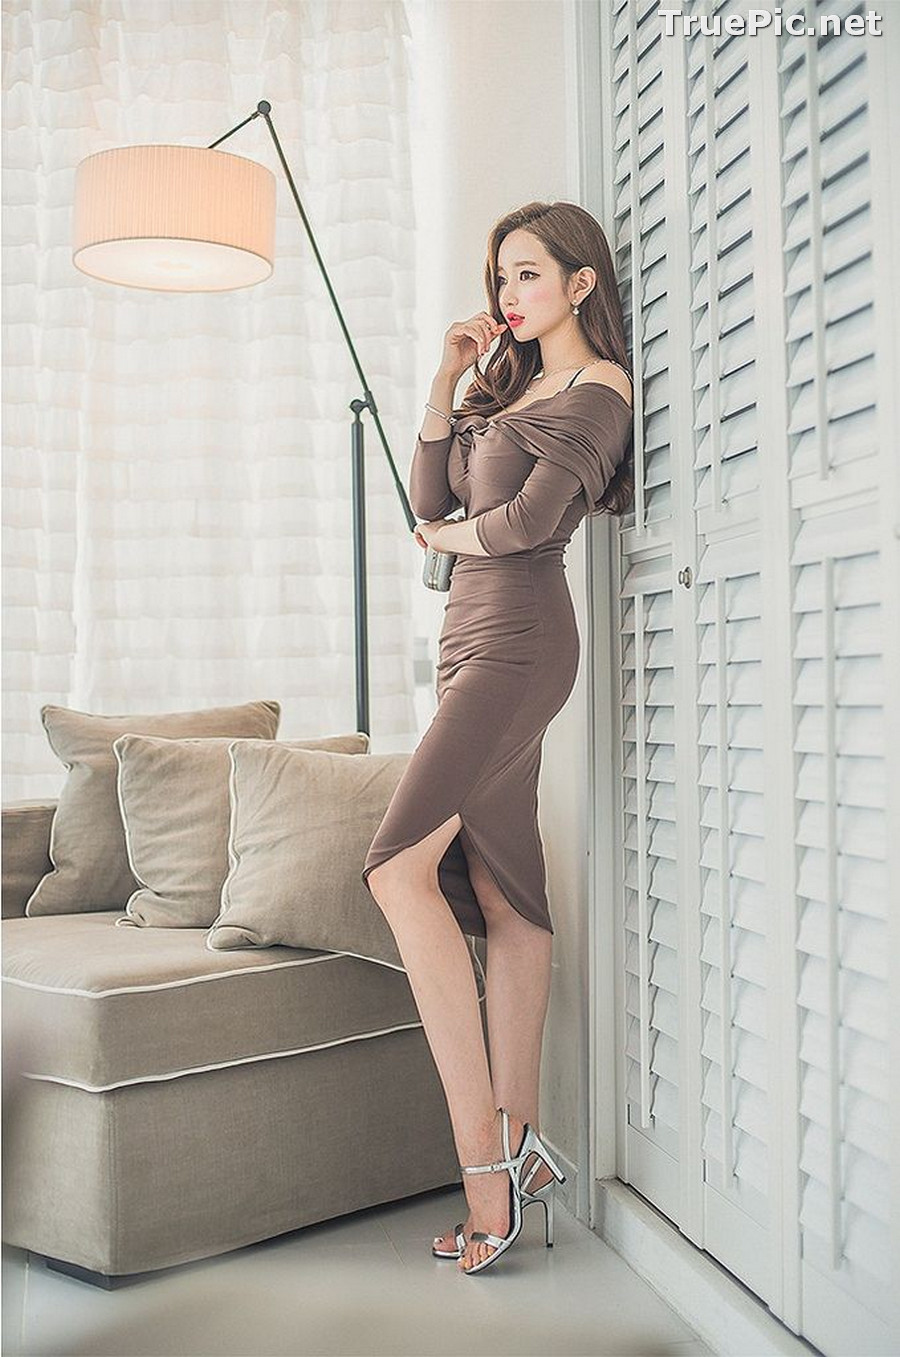 Image Lee Yeon Jeong – Indoor Photoshoot Collection – Korean fashion model – Part 18 - TruePic.net - Picture-9